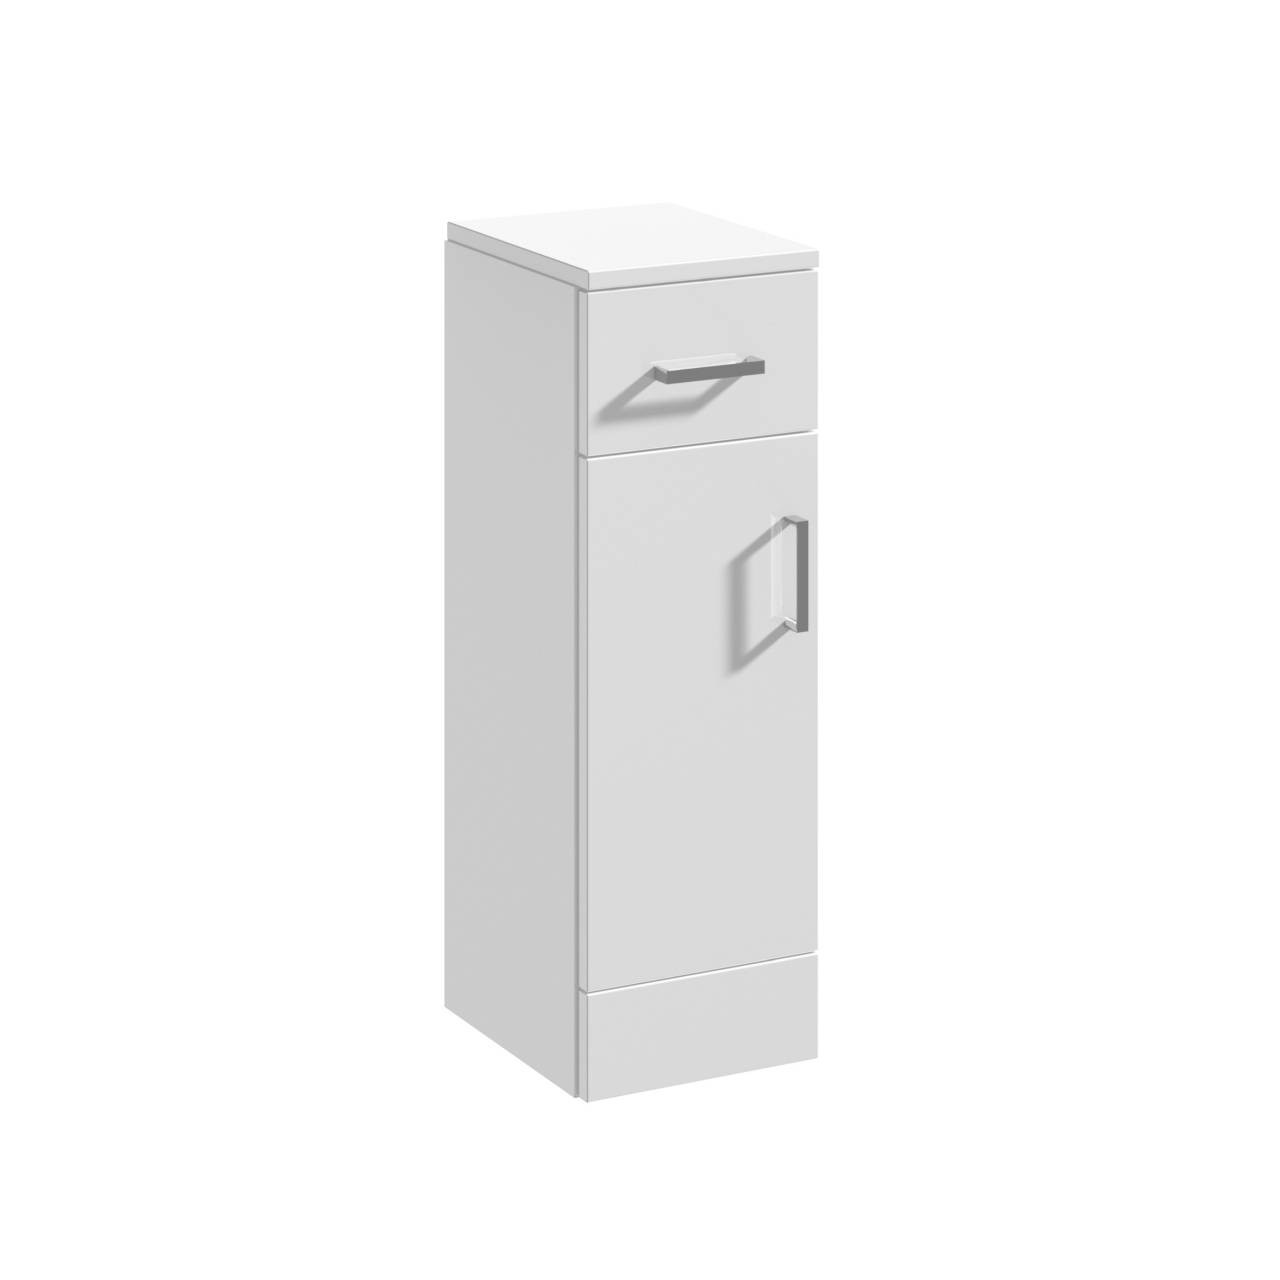 Nuie Mayford Gloss White 250mm x 300mm Storage Cupboard - PRC171